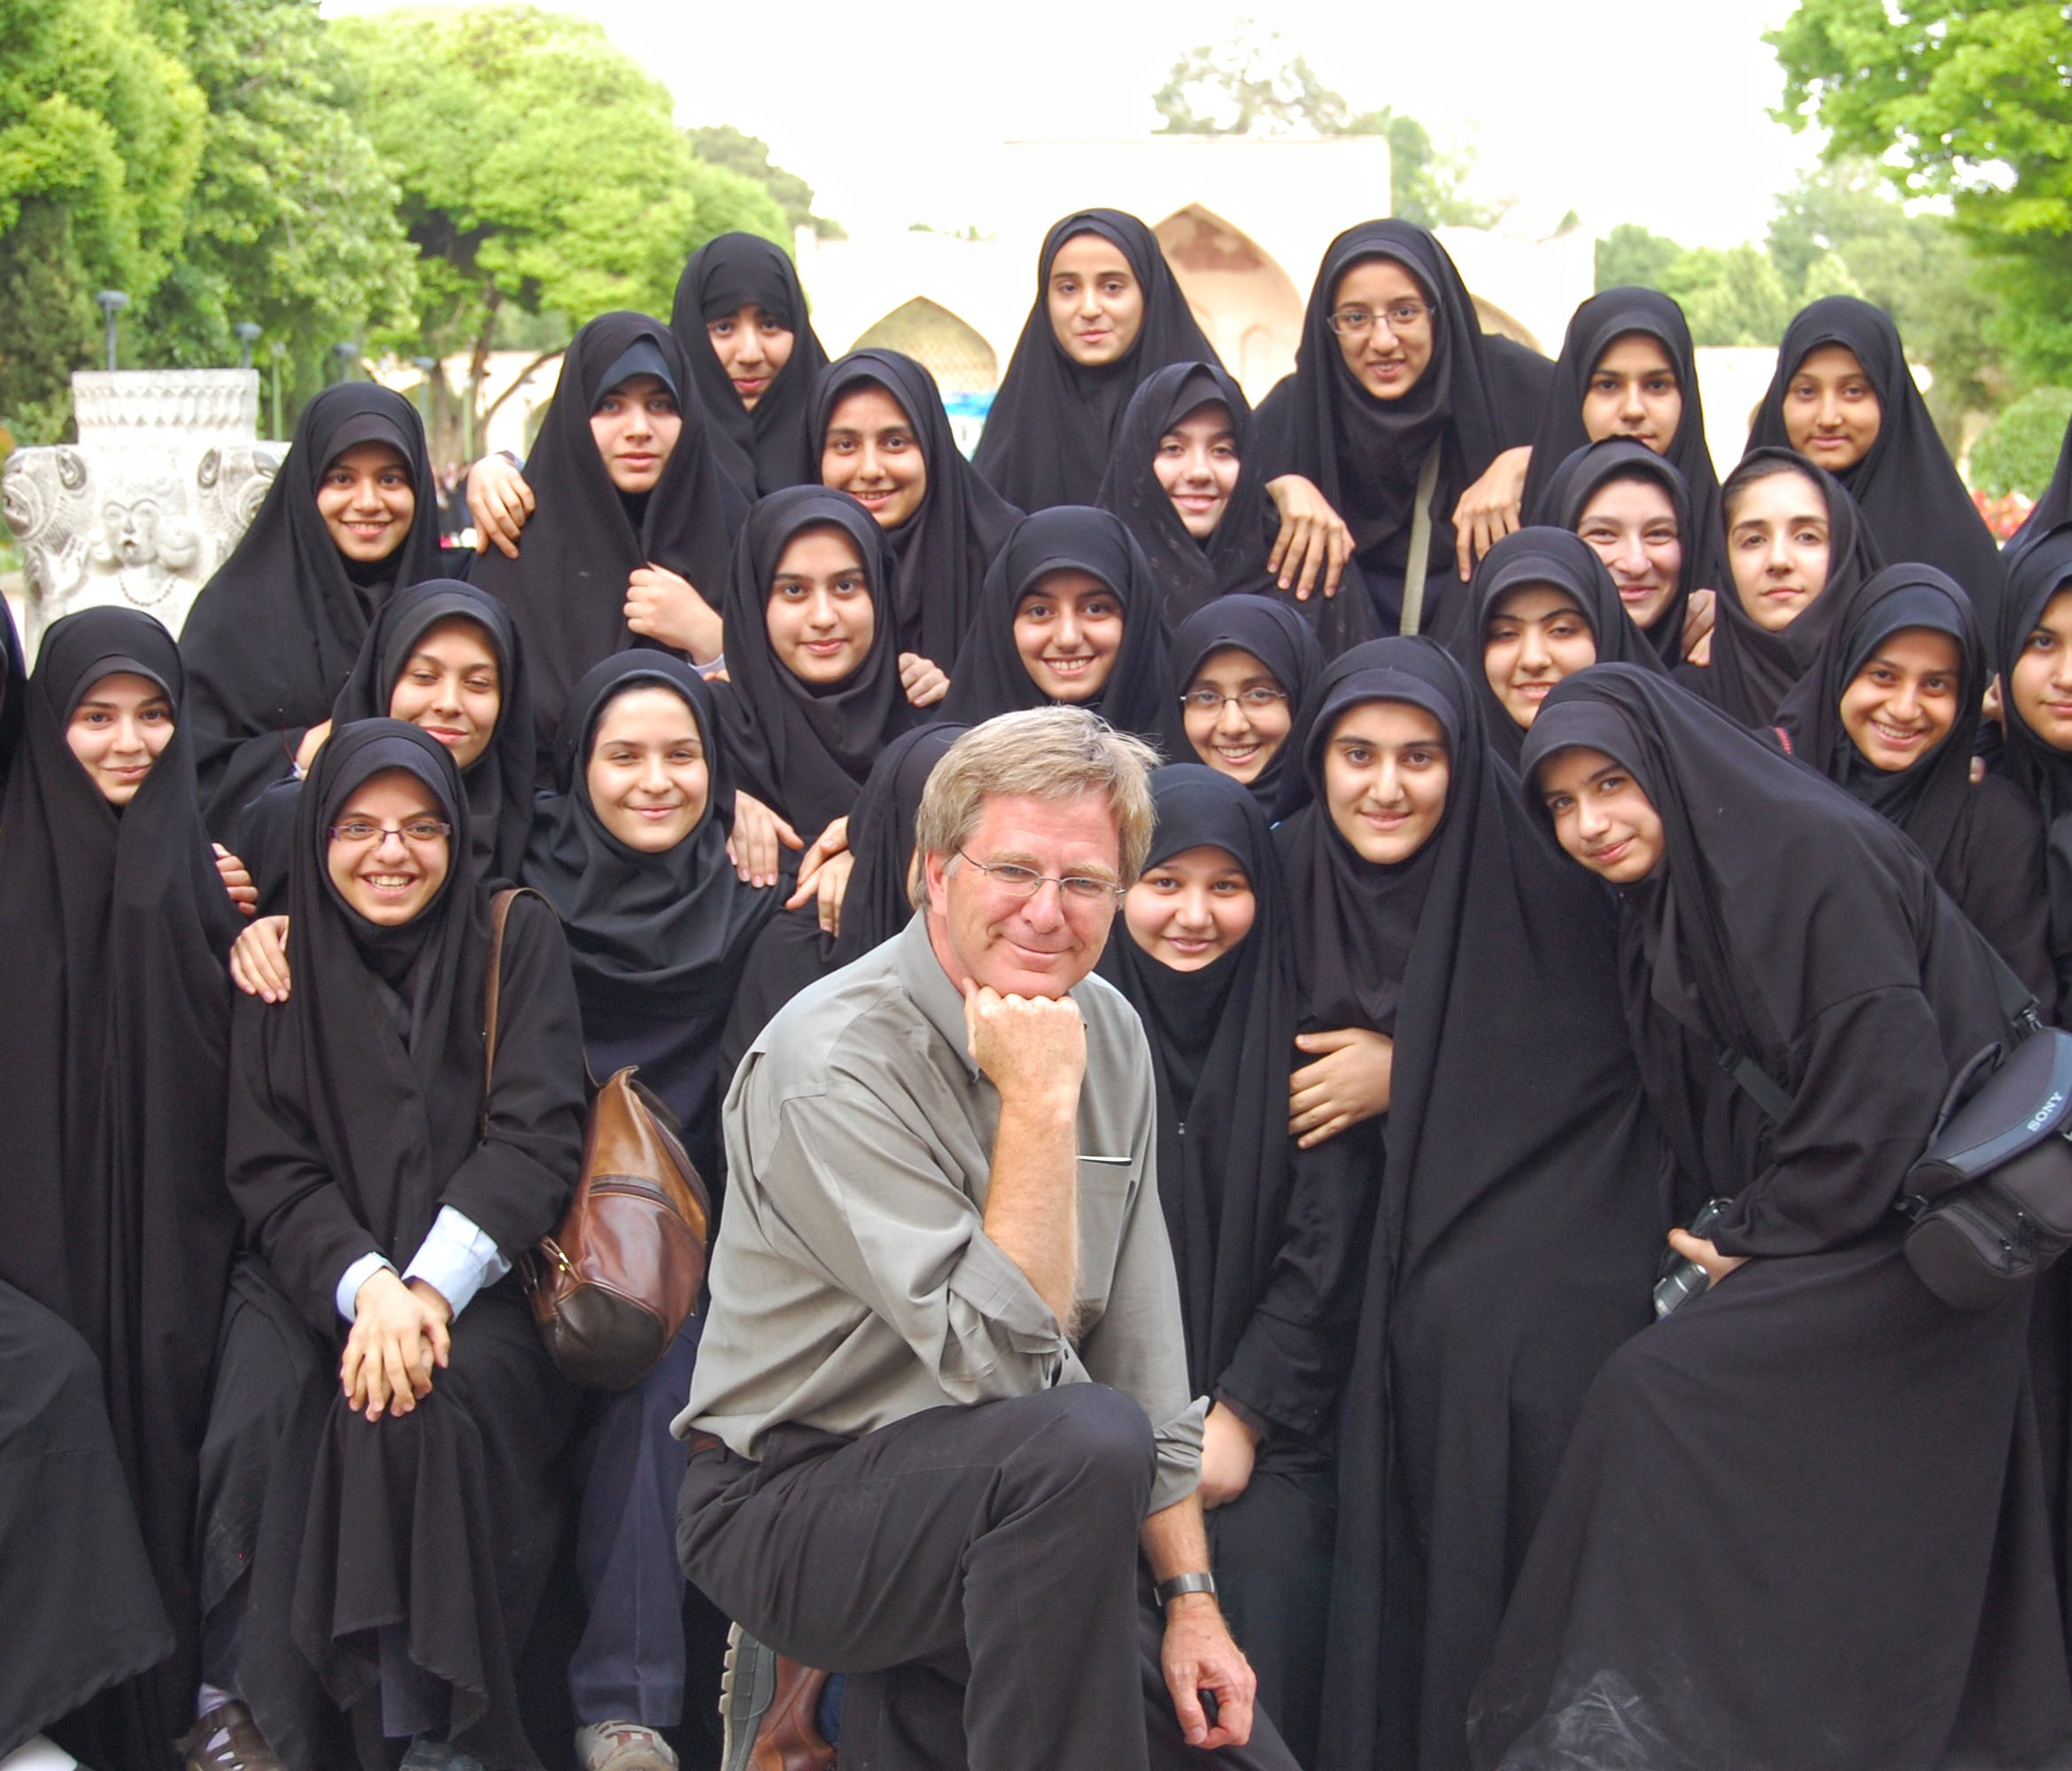 Relations with Iran have been strained for decades, which is why Rick Steves says it's important to visit.